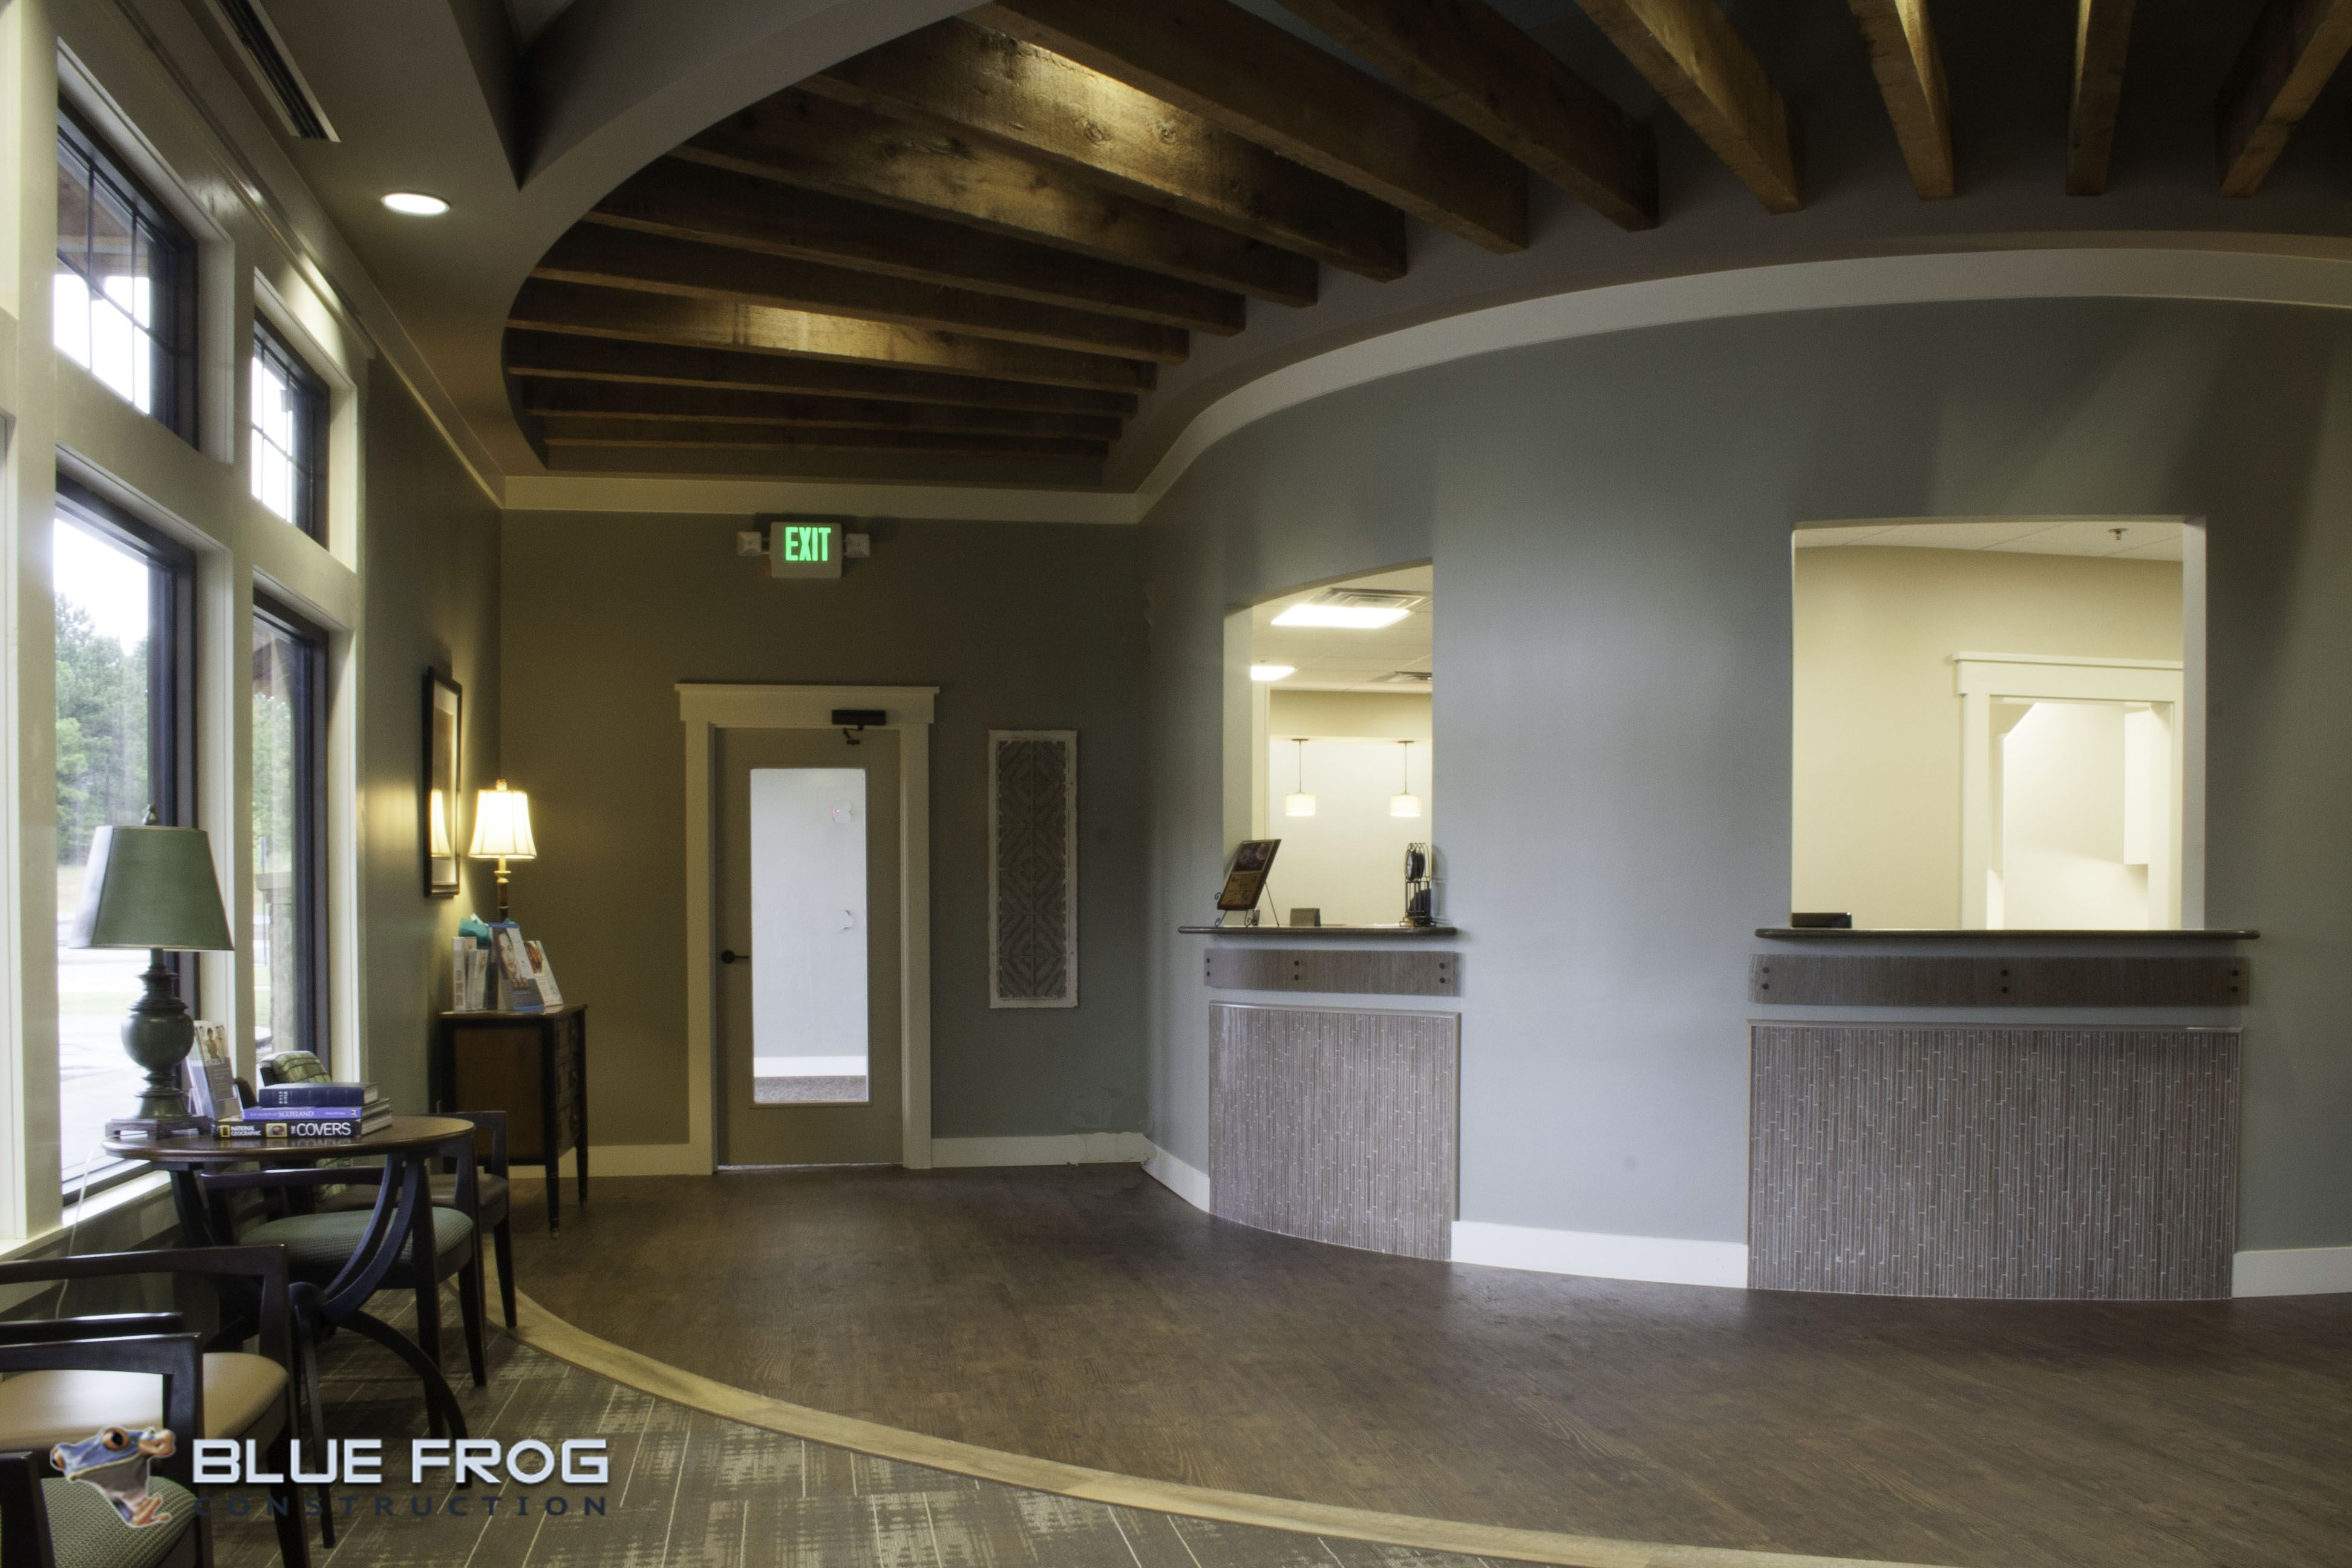 Dermatology Clinic Asc Check In Area With Cedar Beams Above By Bluefrog Design Build Firm